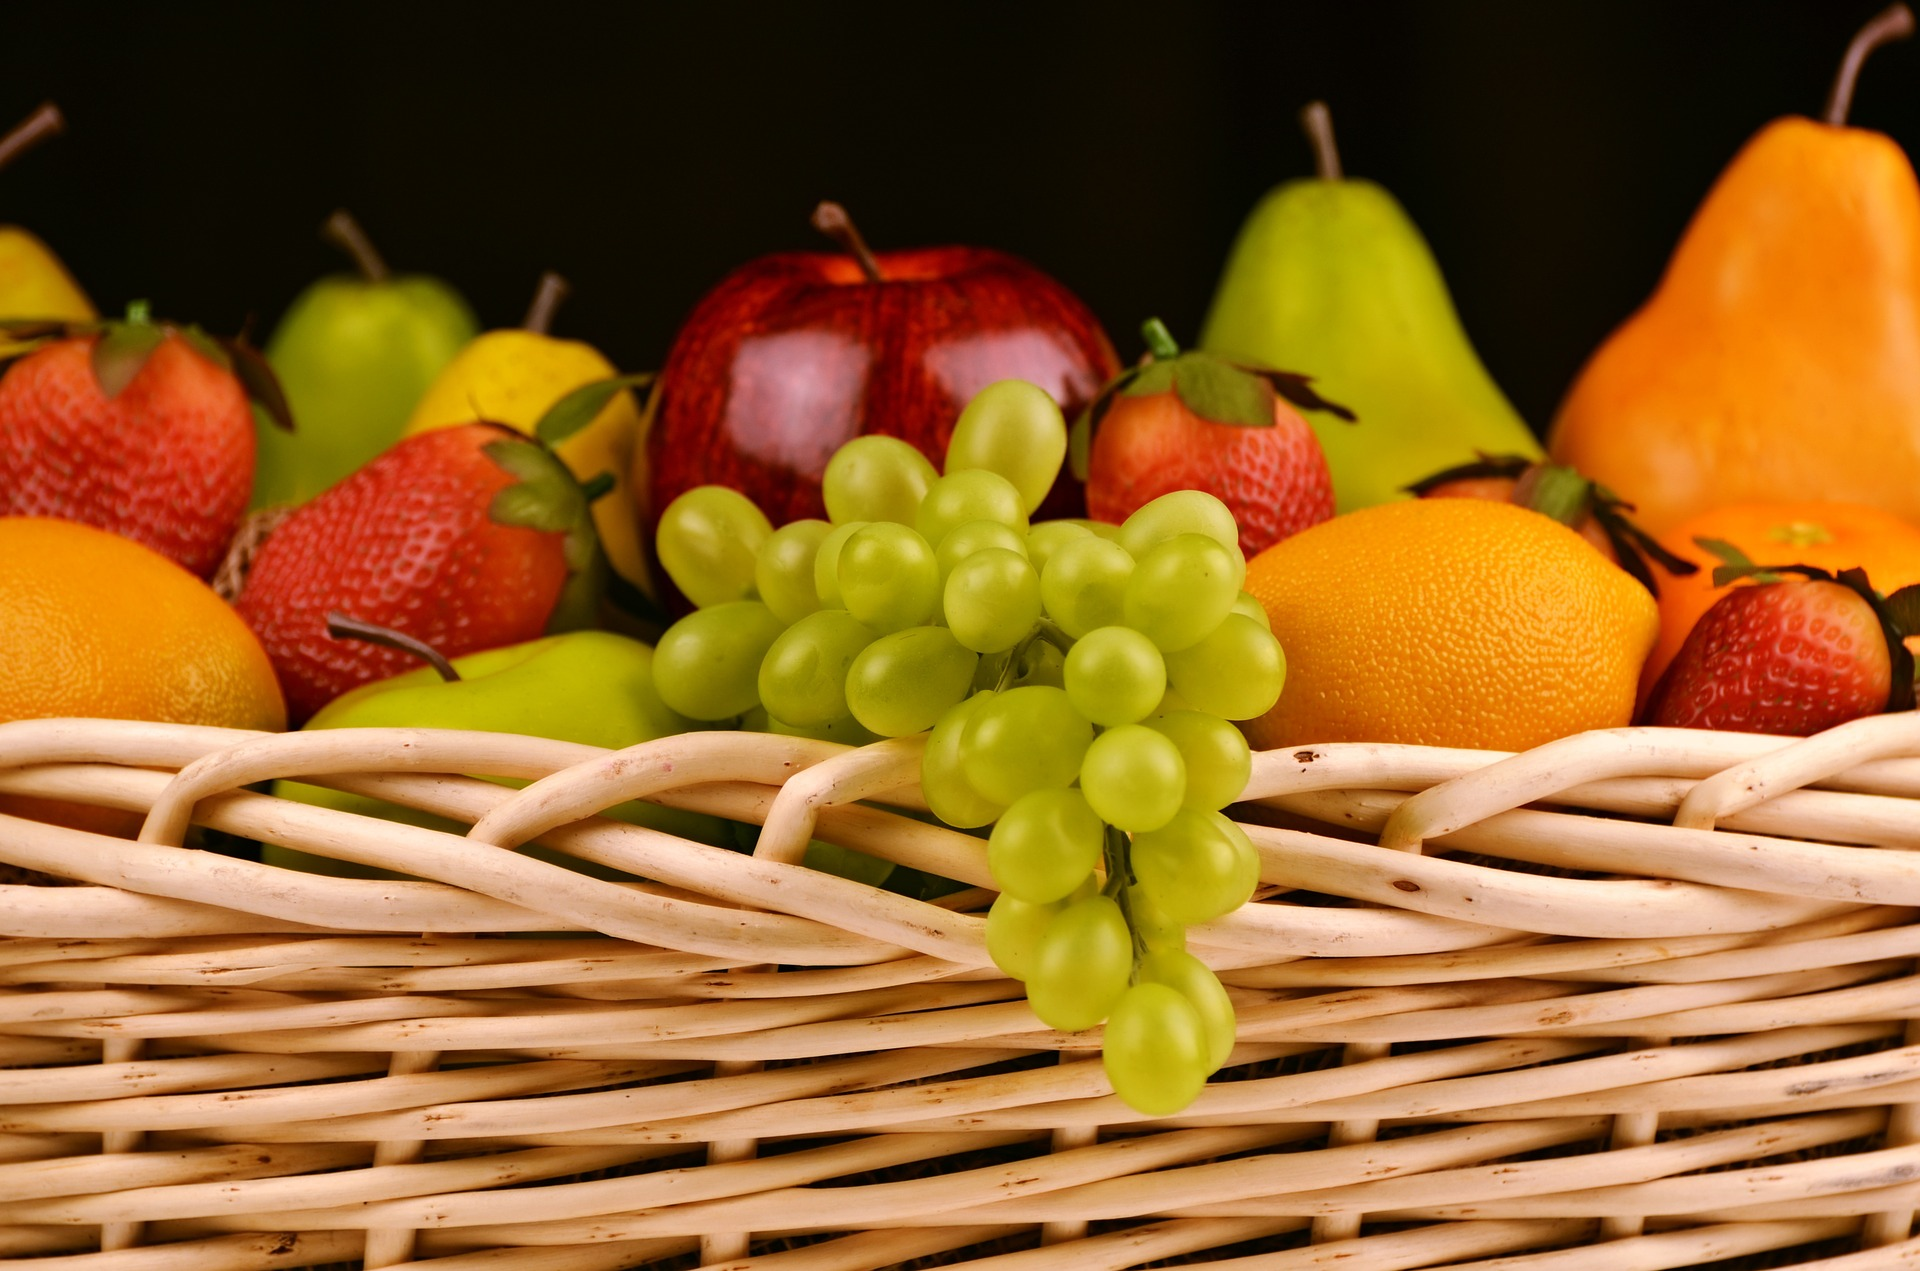 Hrana fruit basket 1114060 1920